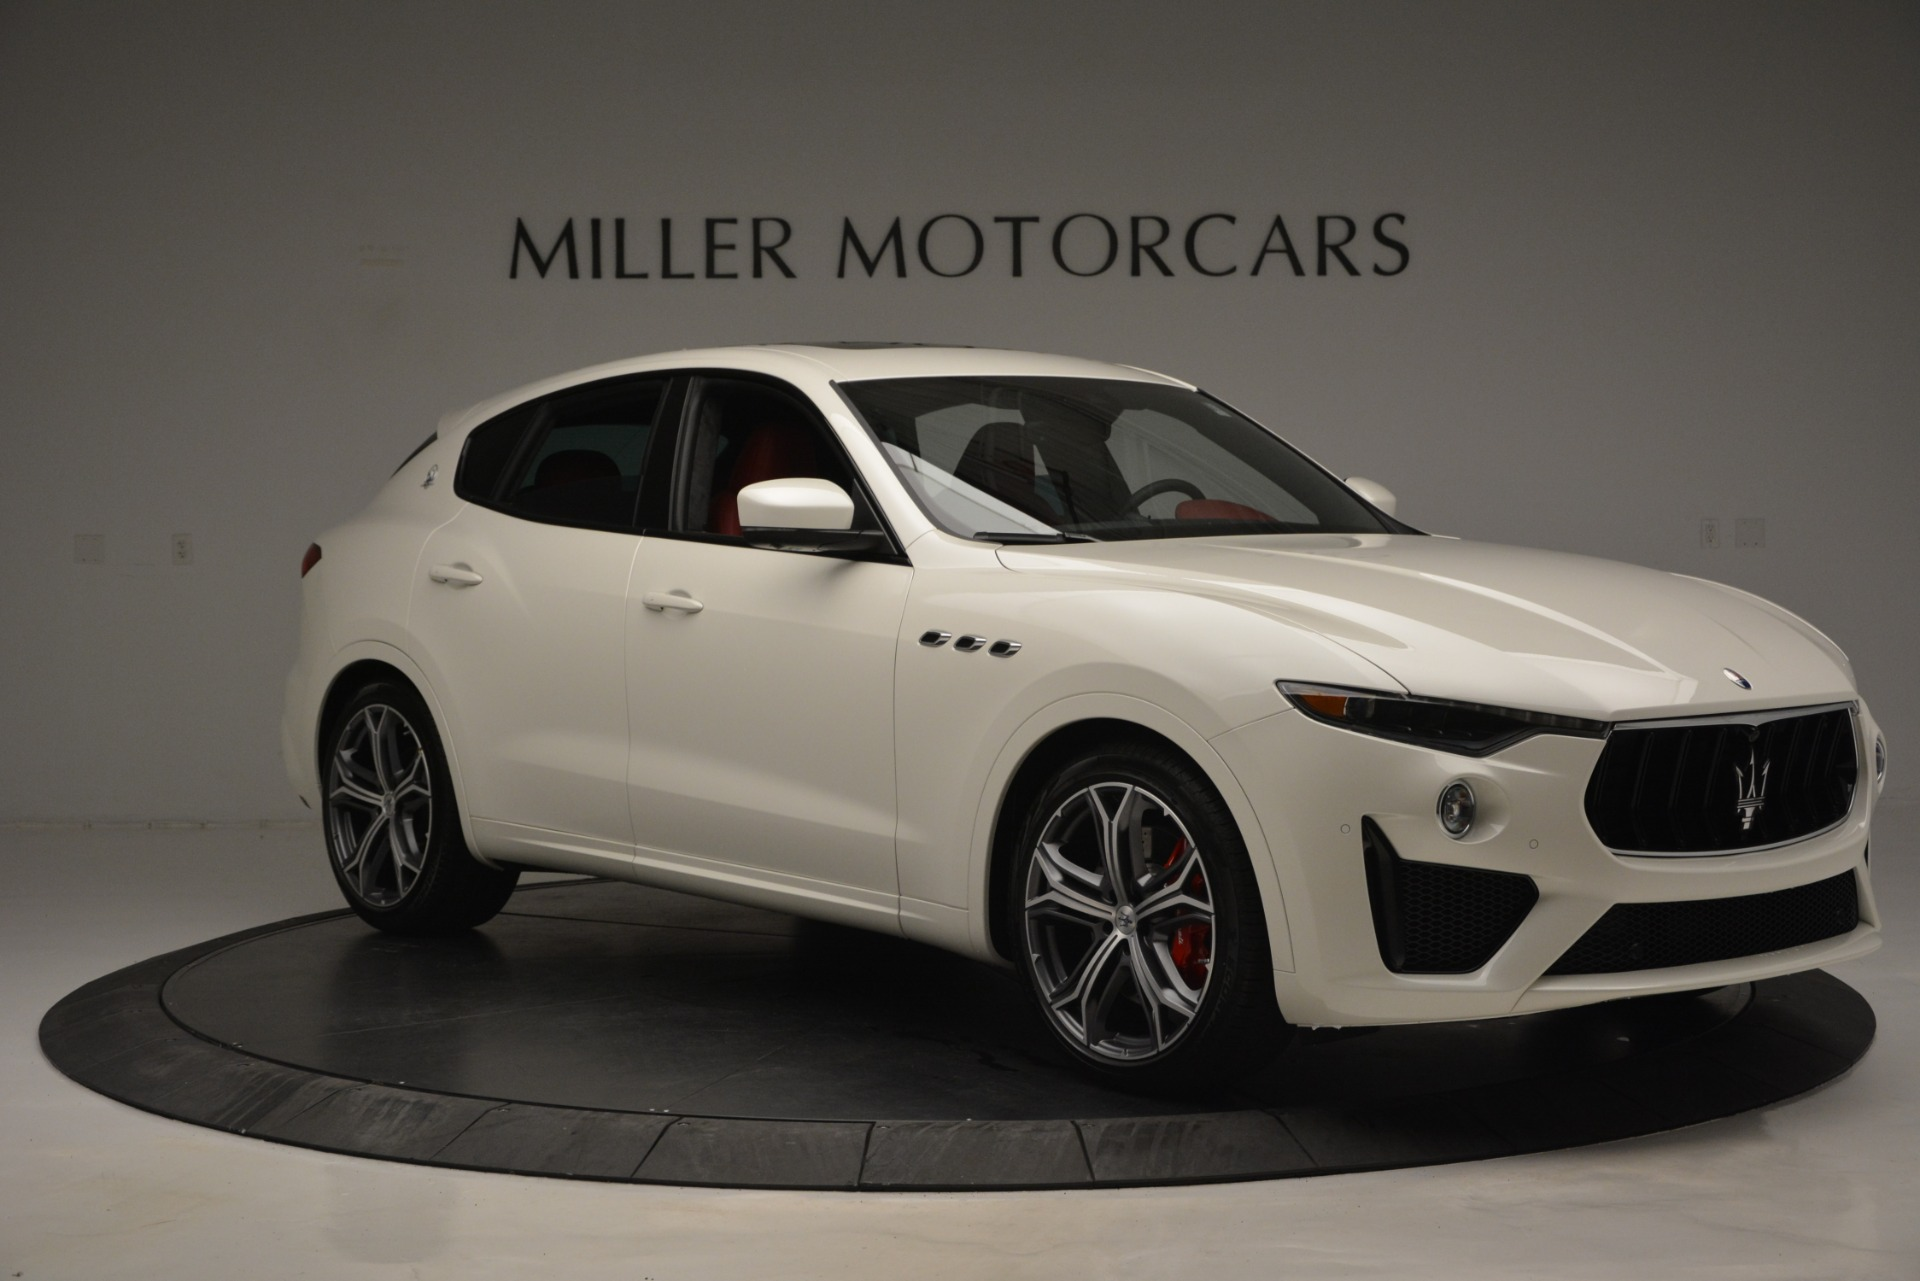 New 2019 Maserati Levante GTS For Sale In Westport, CT 2883_p14